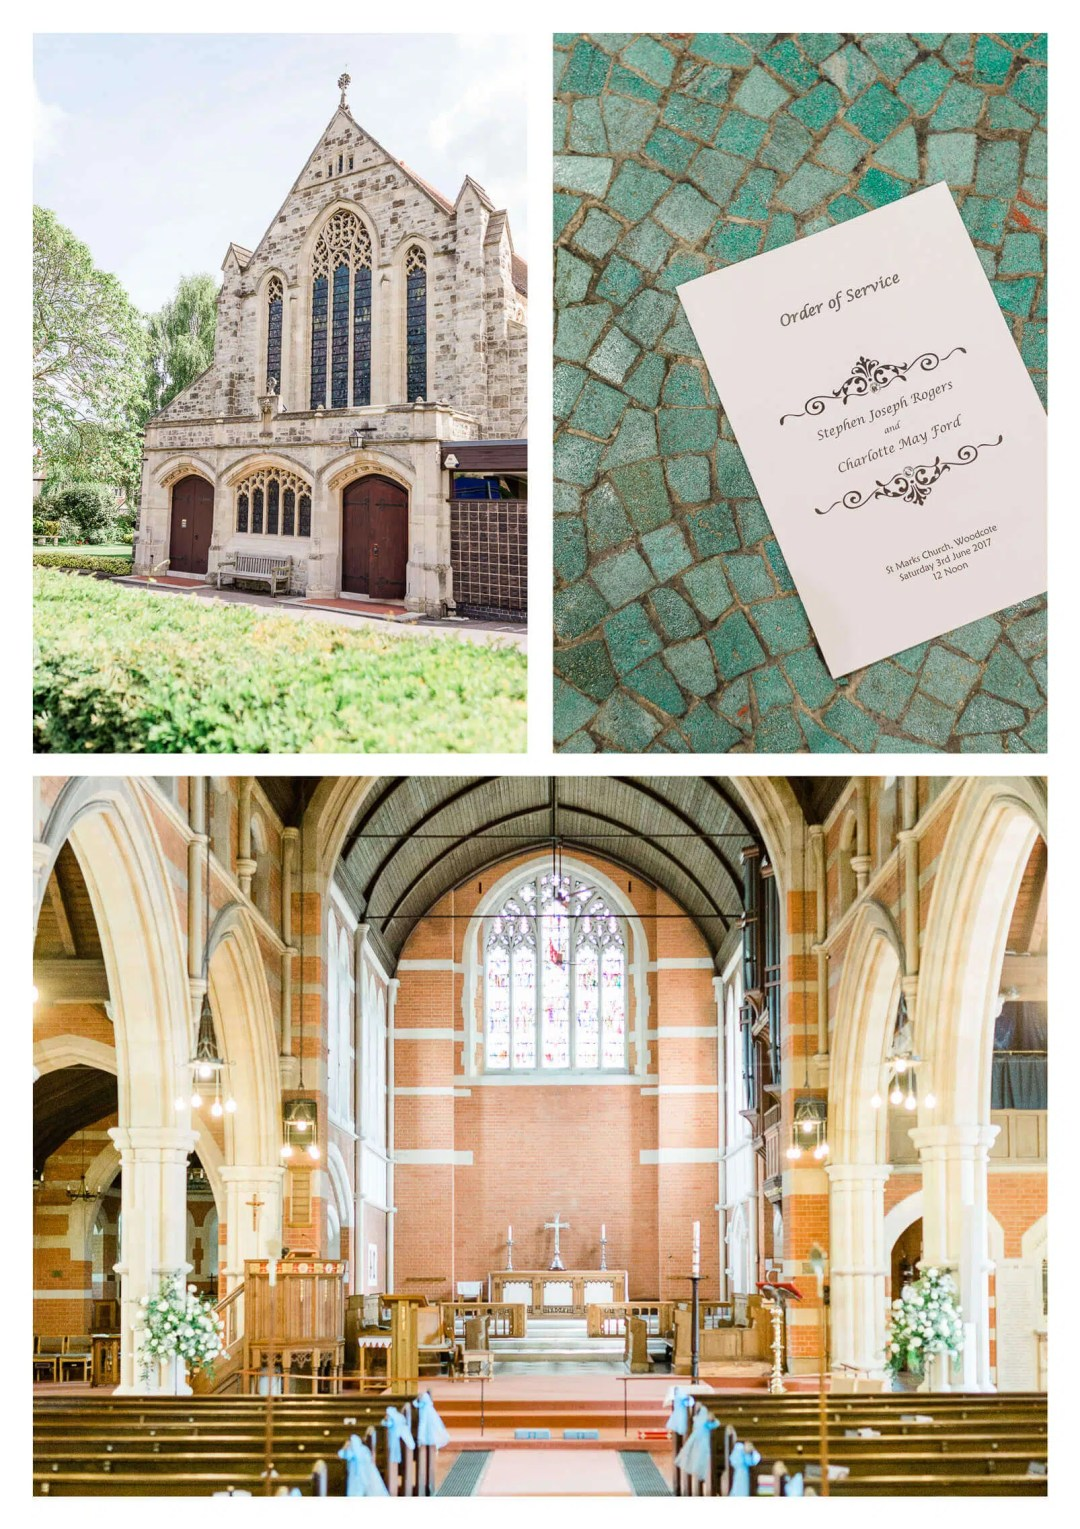 St Marks Church wedding ceremony in Croydon | London wedding photographer